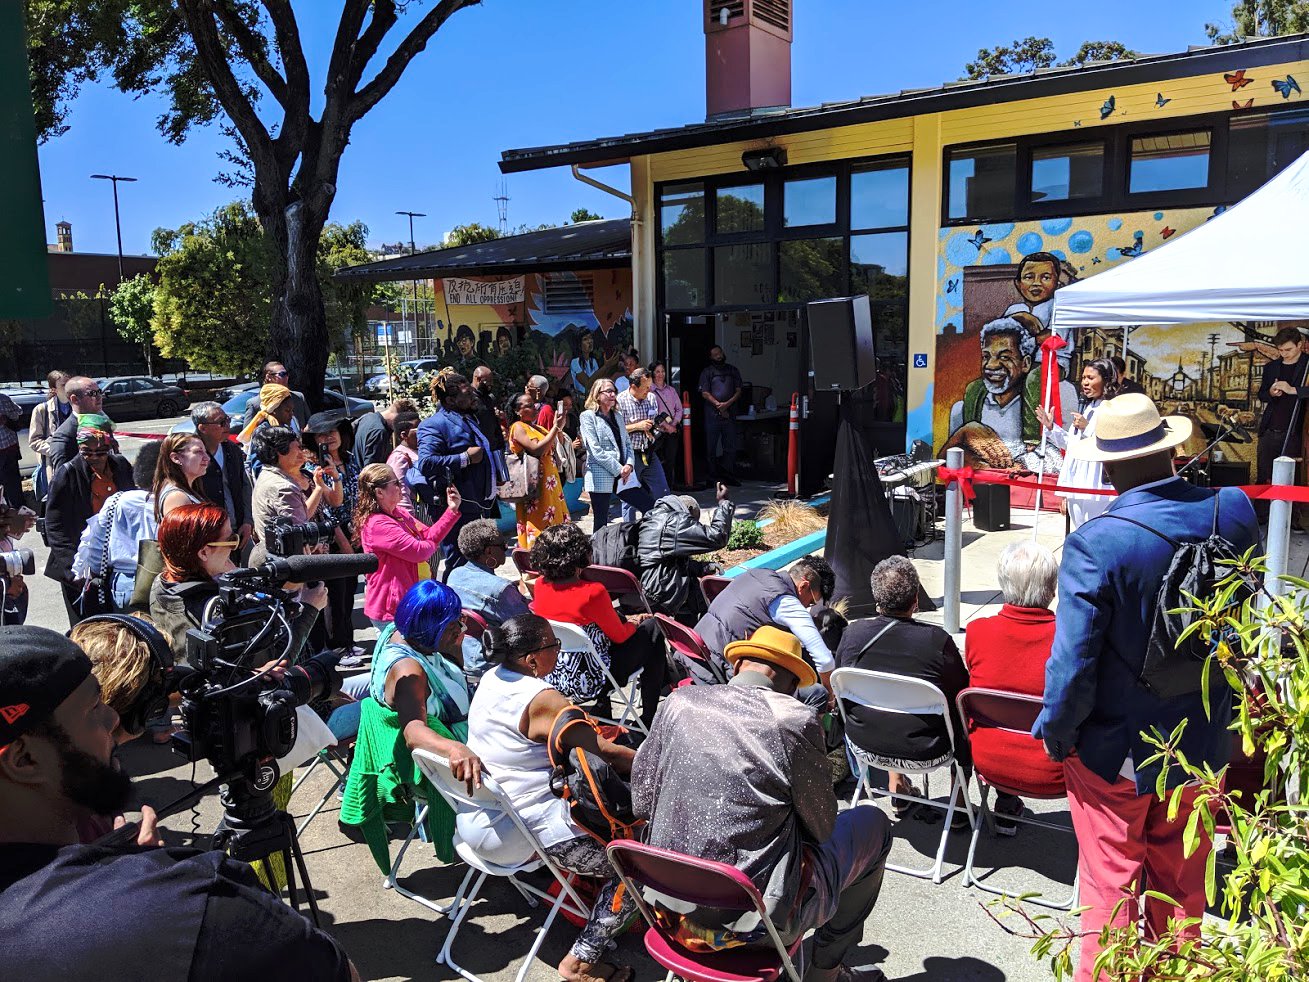 Mayor-London-Breed-unveils-'Spirit-of-Fillmore'-mural-crowd-Buchanan-Mall-080319-by-Darcy-Brown-Martin, Community-created 'Spirit of Fillmore' mural unveiled by SF Mayor London Breed, Local News & Views